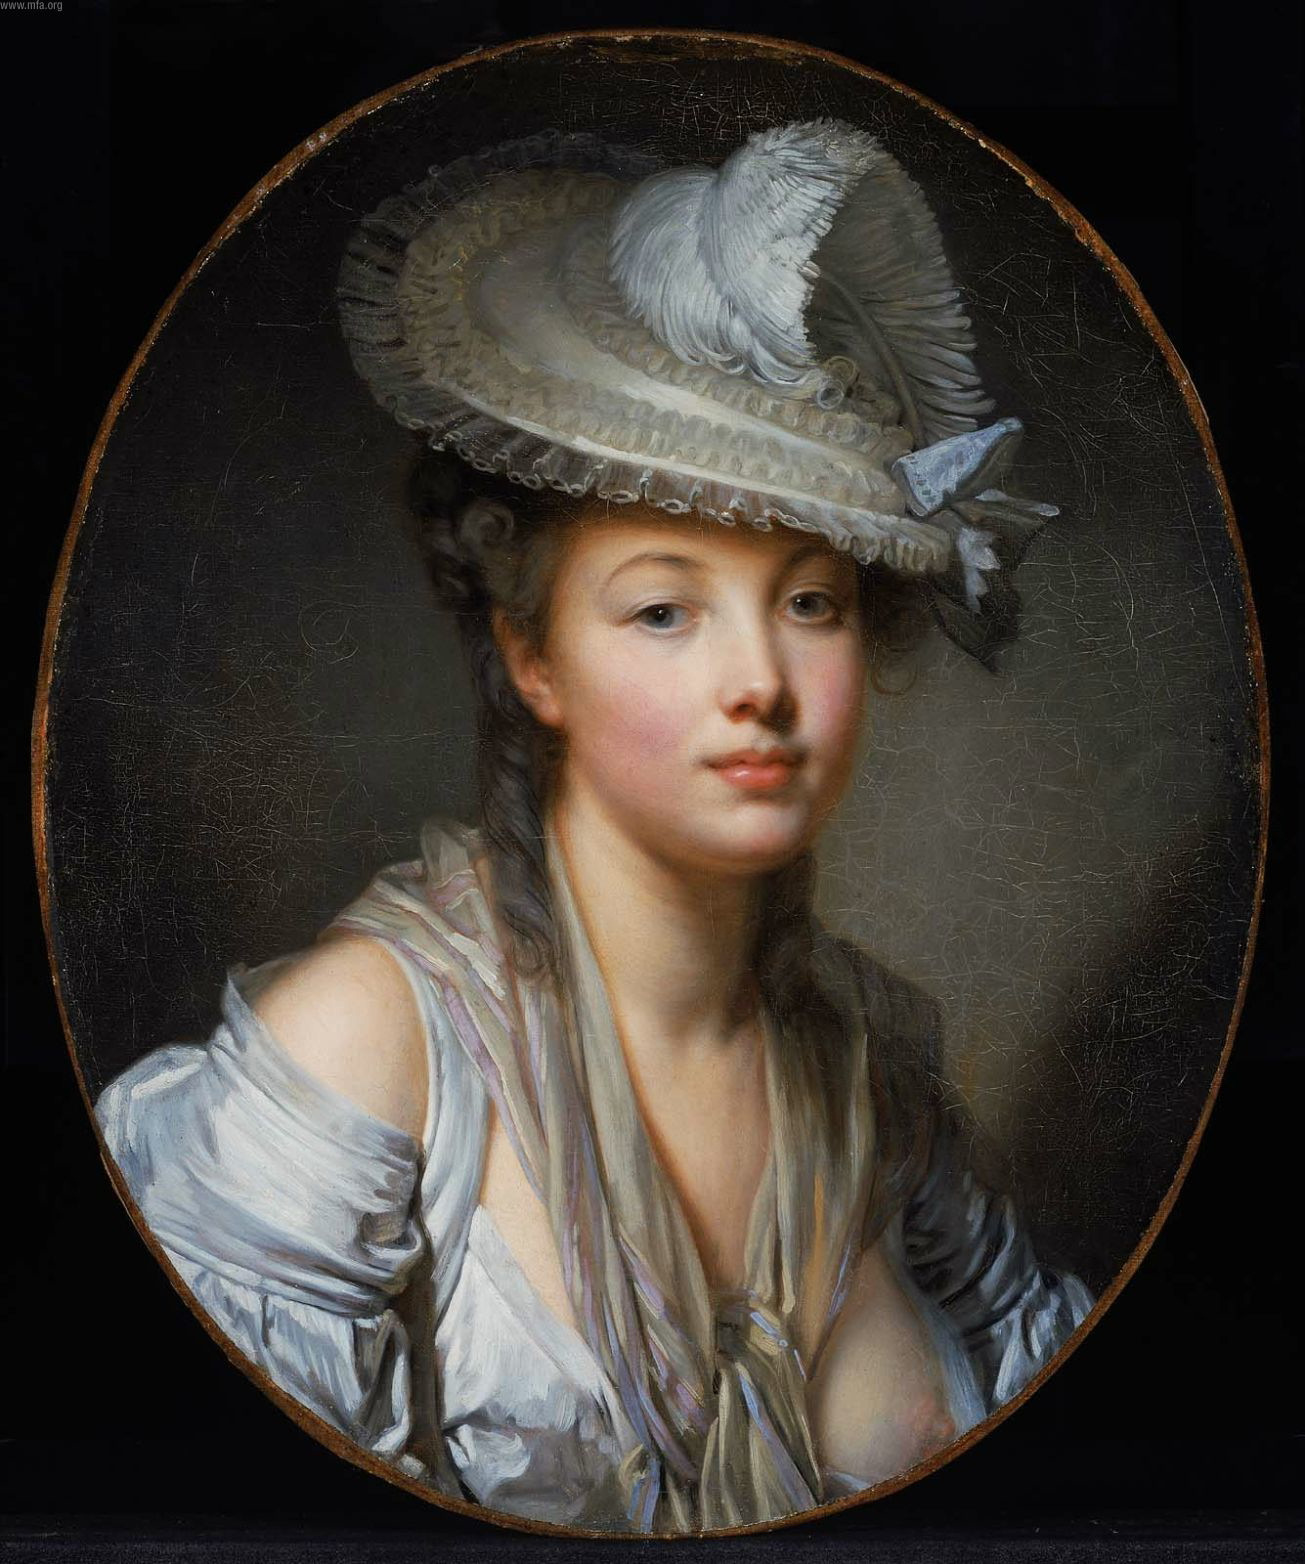 Jean-Baptiste_Greuze_The_White_Hat_2120759508 from WikiCommons